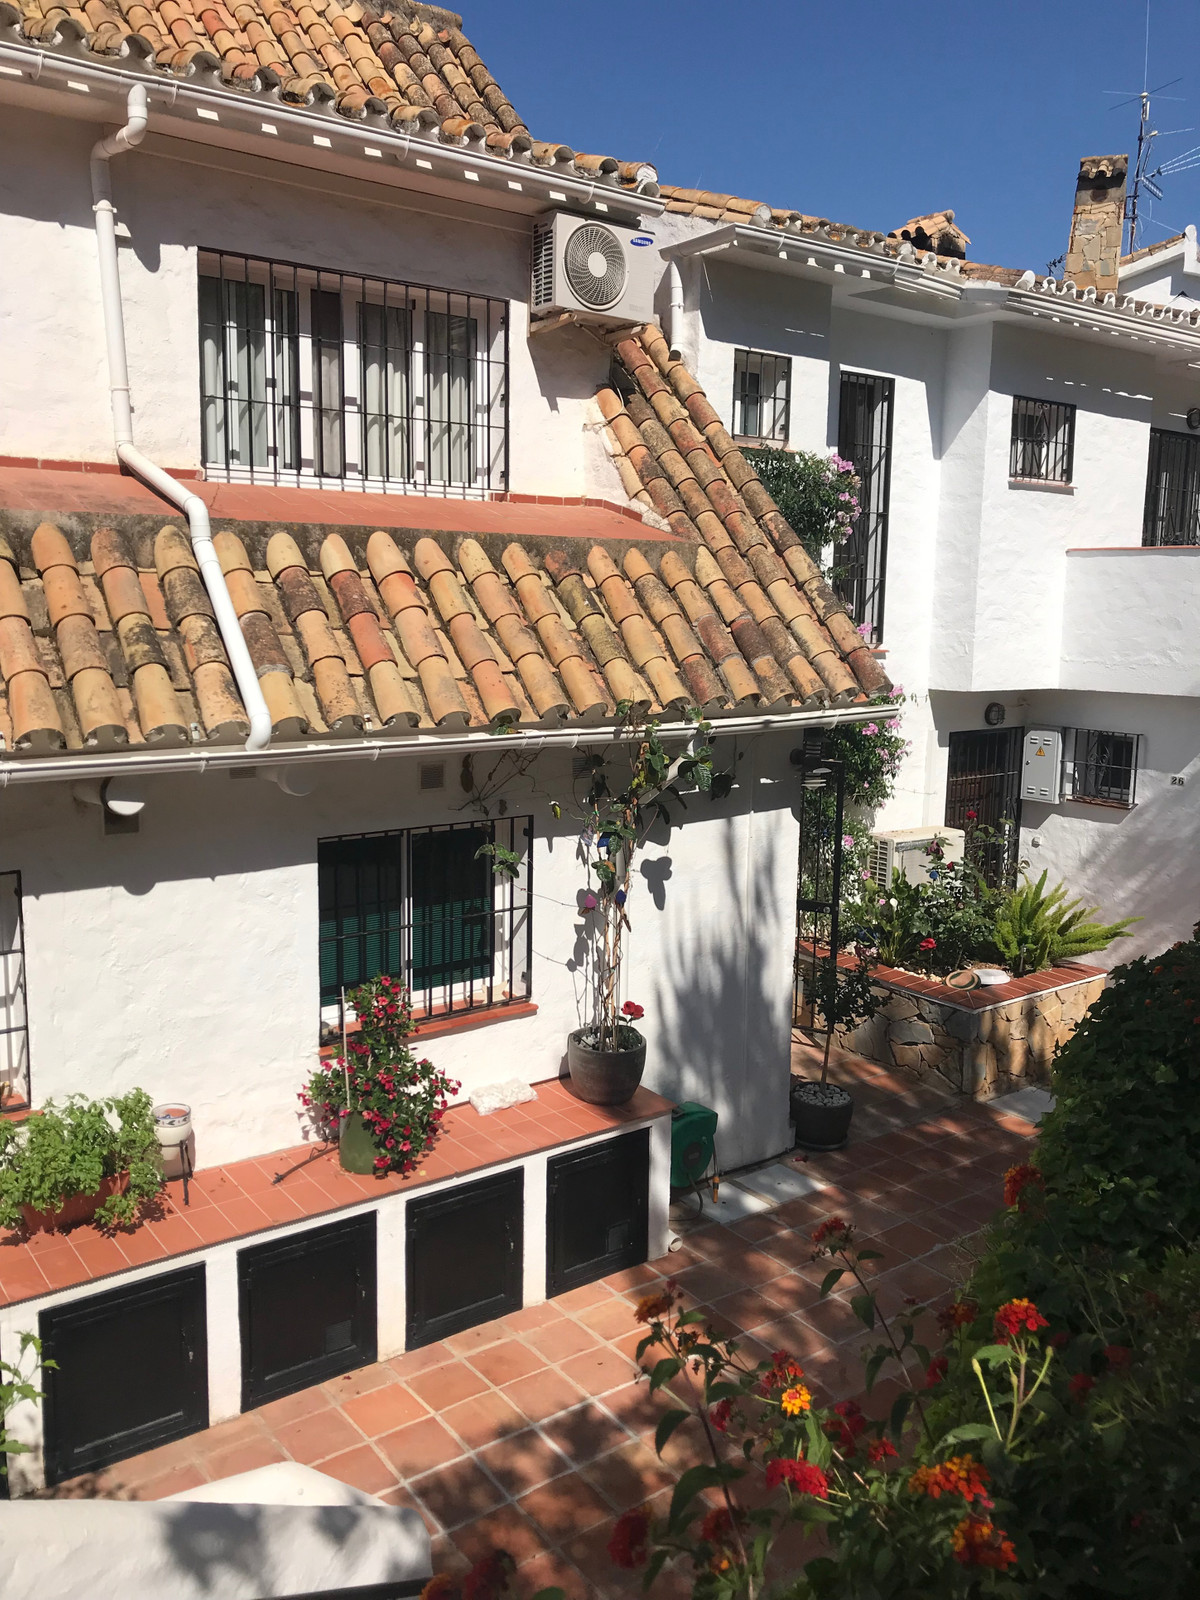 A charming townhouse in traditional spanish style in an urbanisation in Campo Mijas. Peaceful and pr, Spain